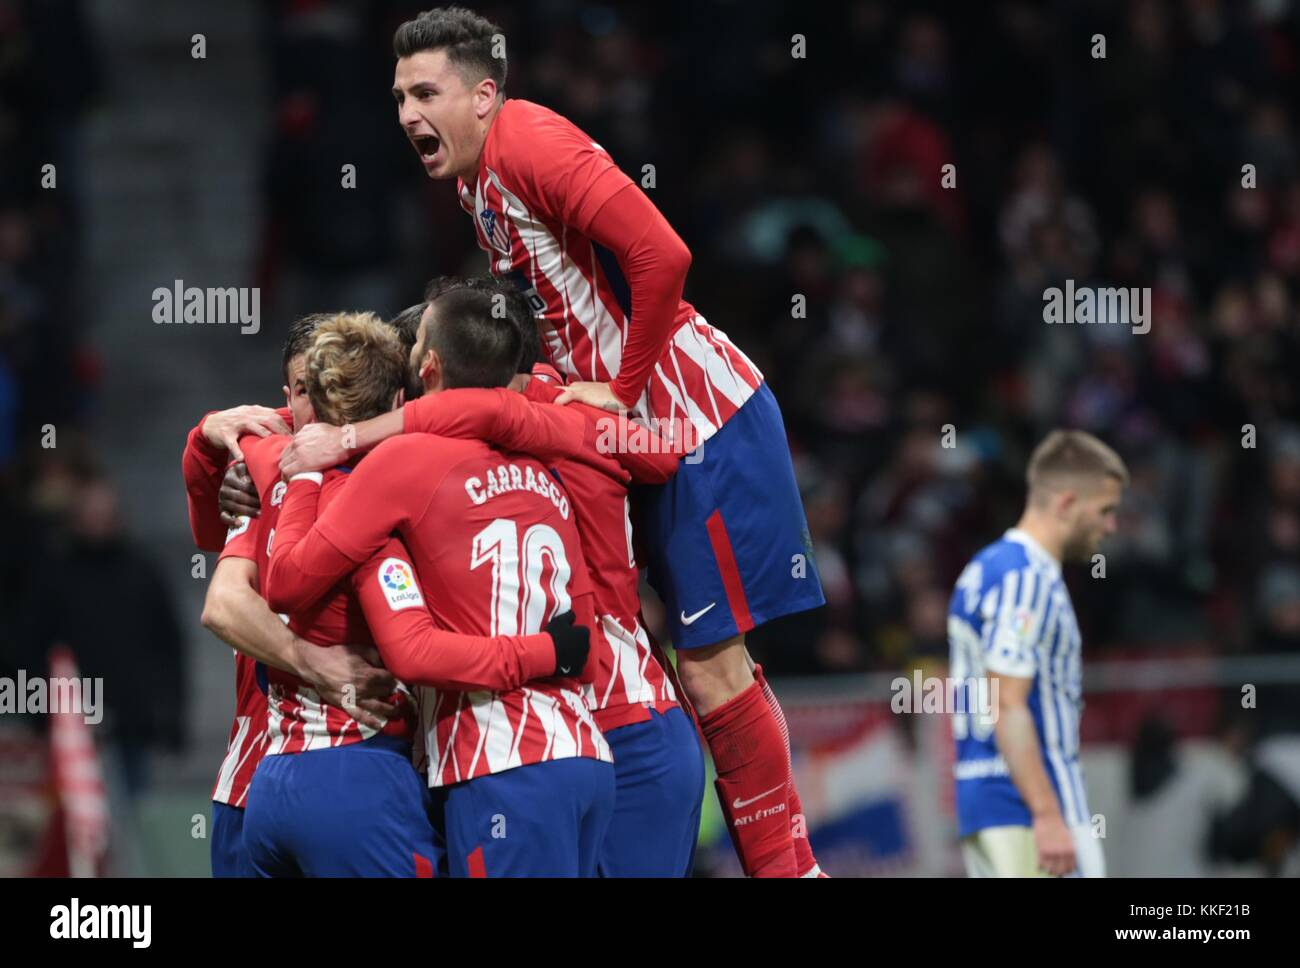 Madrid, Spain. 2nd Dec, 2017. Players of Atletico de Madrid celebrate their second goal during a Spanish League - Stock Image